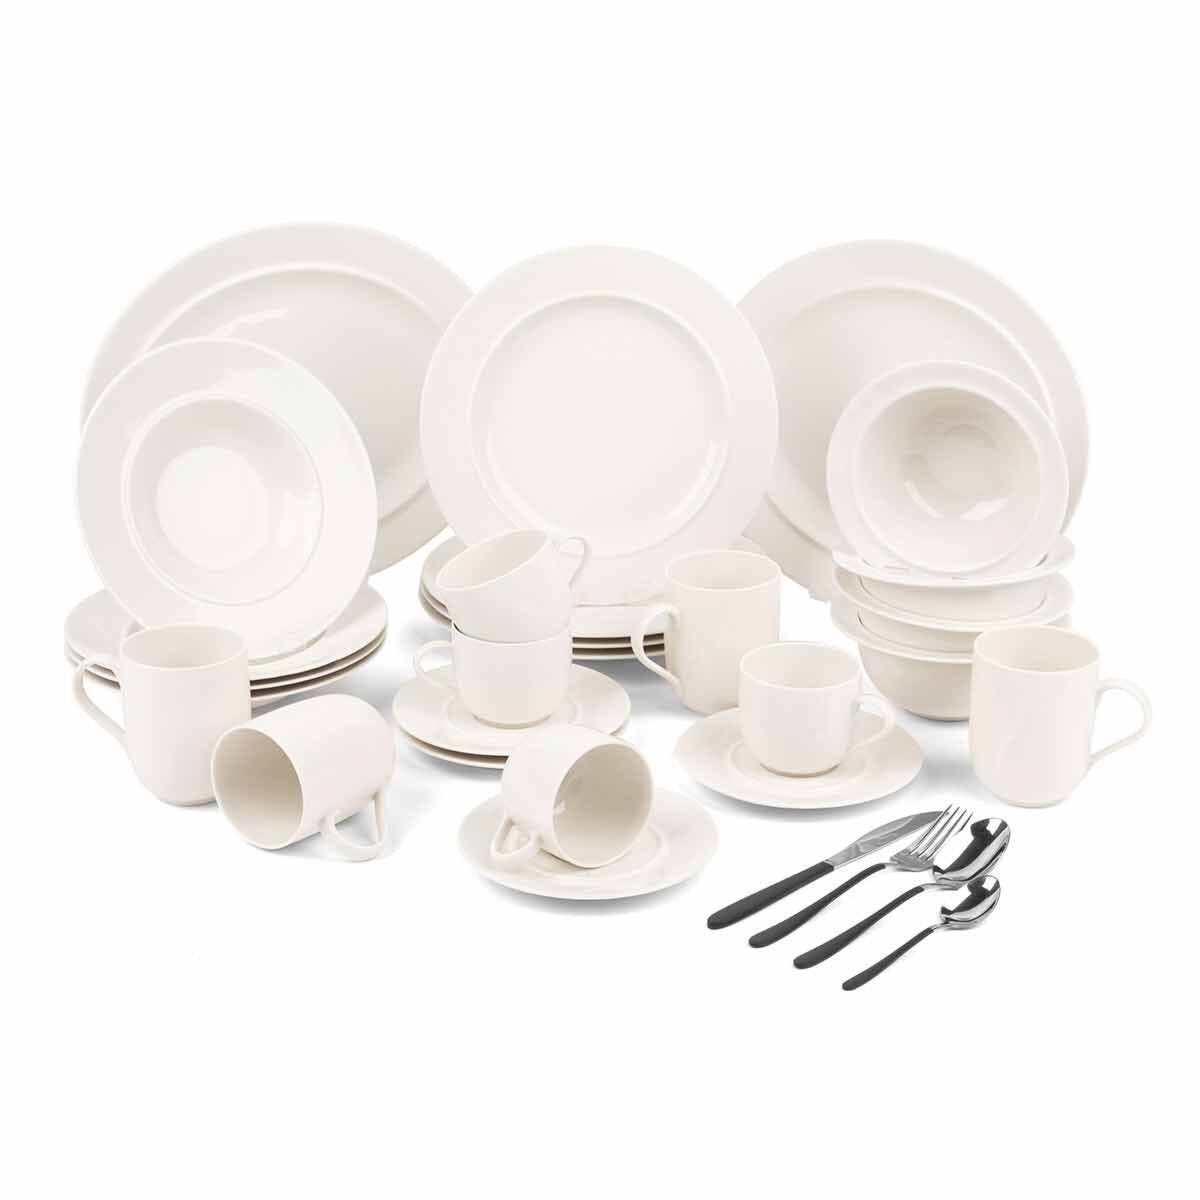 Alessi 38 Piece Dinnerware and Cutlery Set